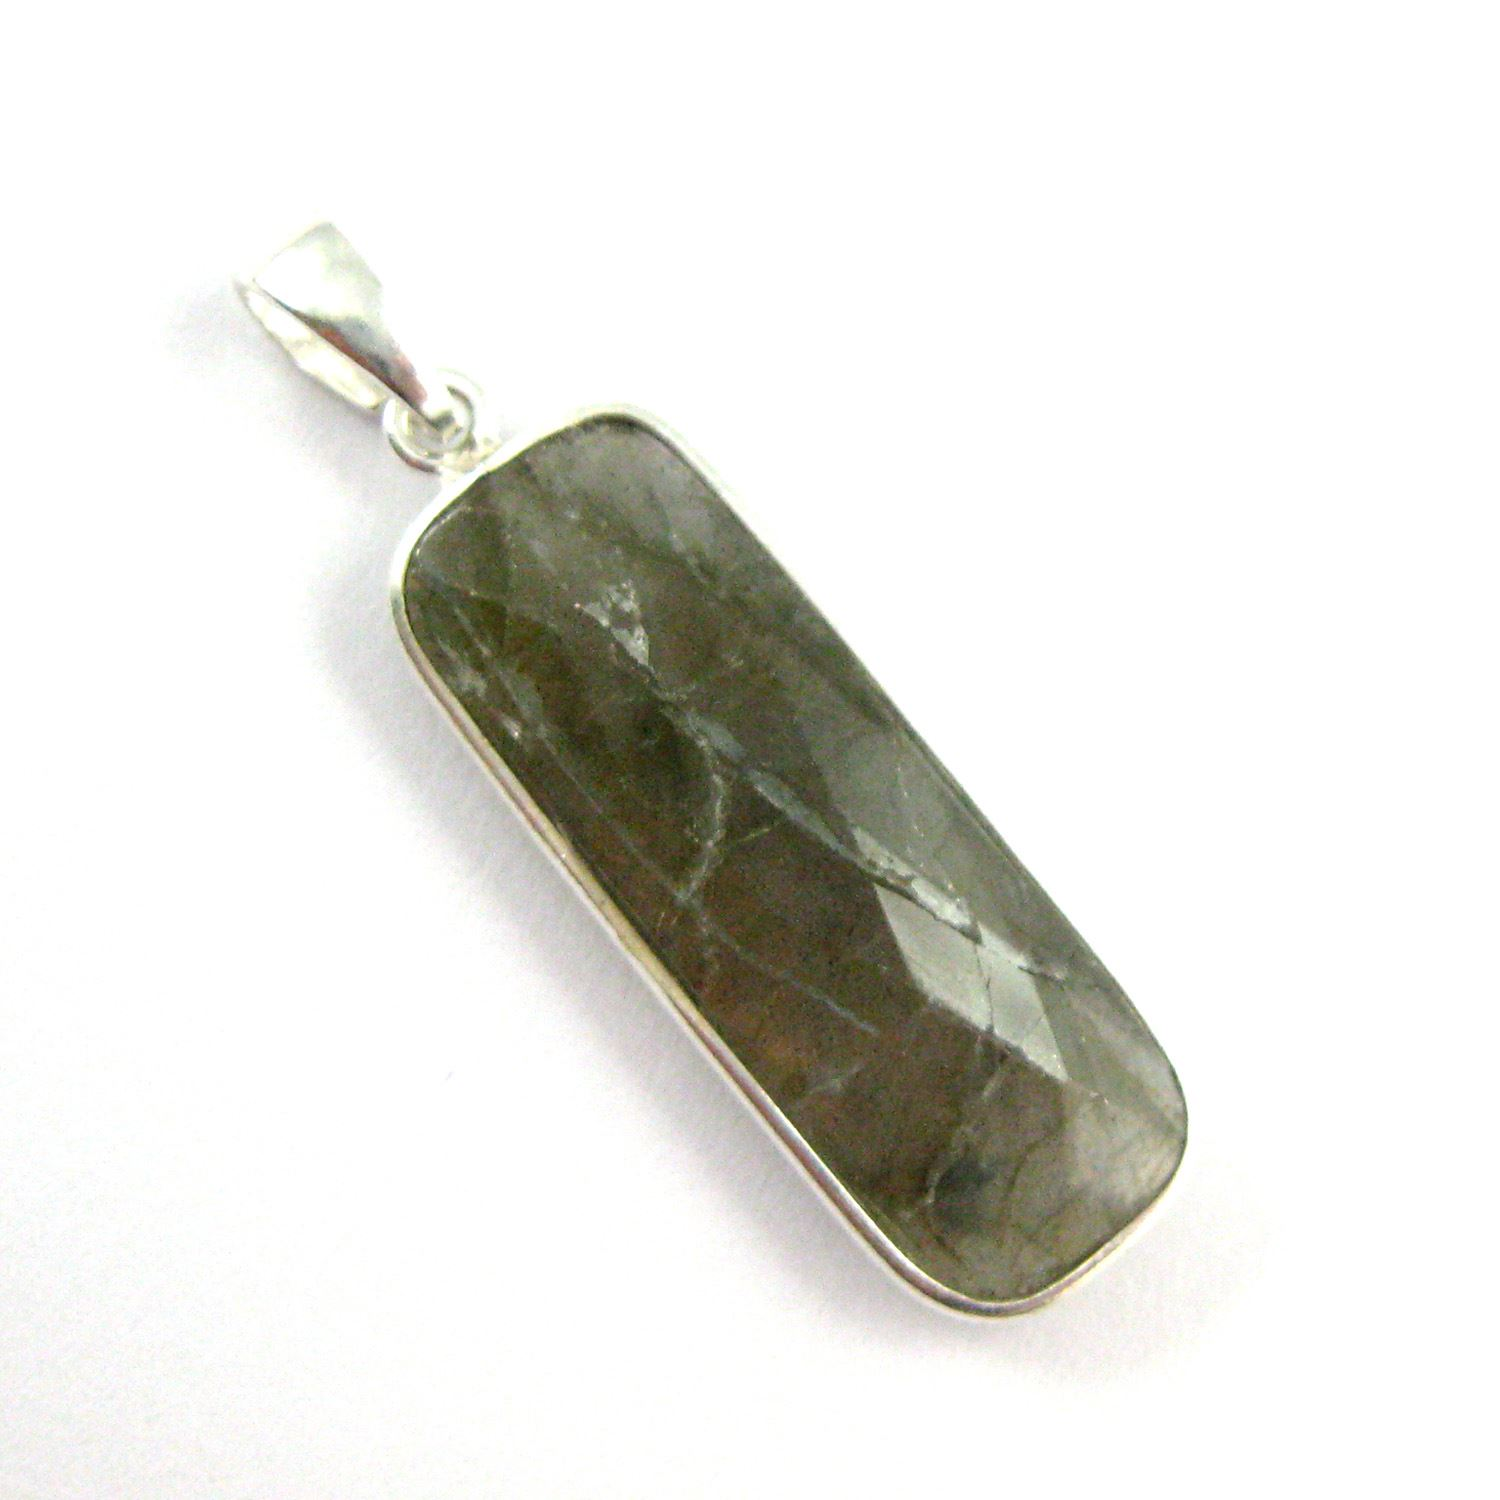 Bezel Gemstone Pendant with Bail - Sterling Silver Rectangle Gem Pendant - Ready for Necklace - 40mm - Labradorite